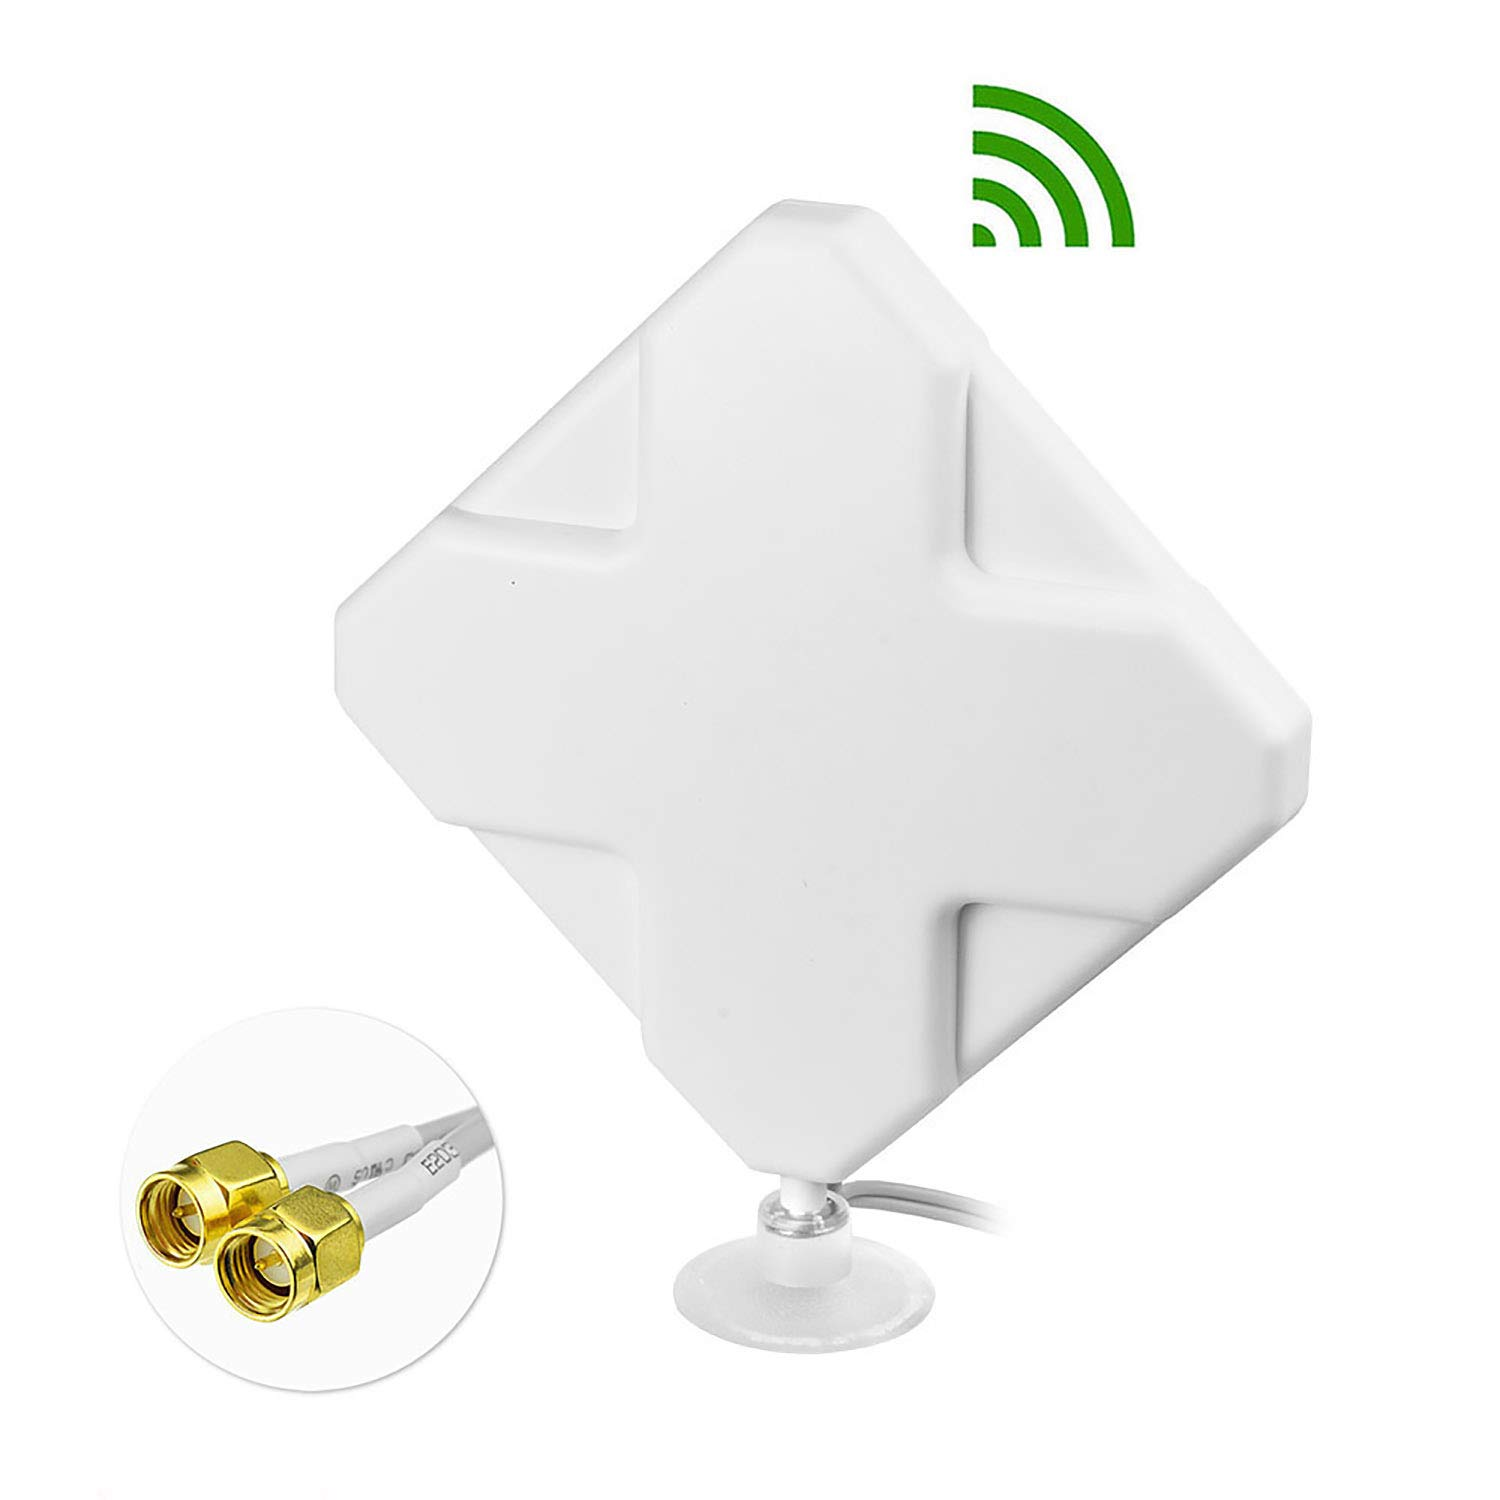 Bingfu 4G LTE Antenna Adapter Splitter Cable SMA Female to Dual SMA Male V-Shape Cable 15cm for 4G LTE Home Phone Router Gateway Modem MiFi Mobile Hotspot Cellular Router